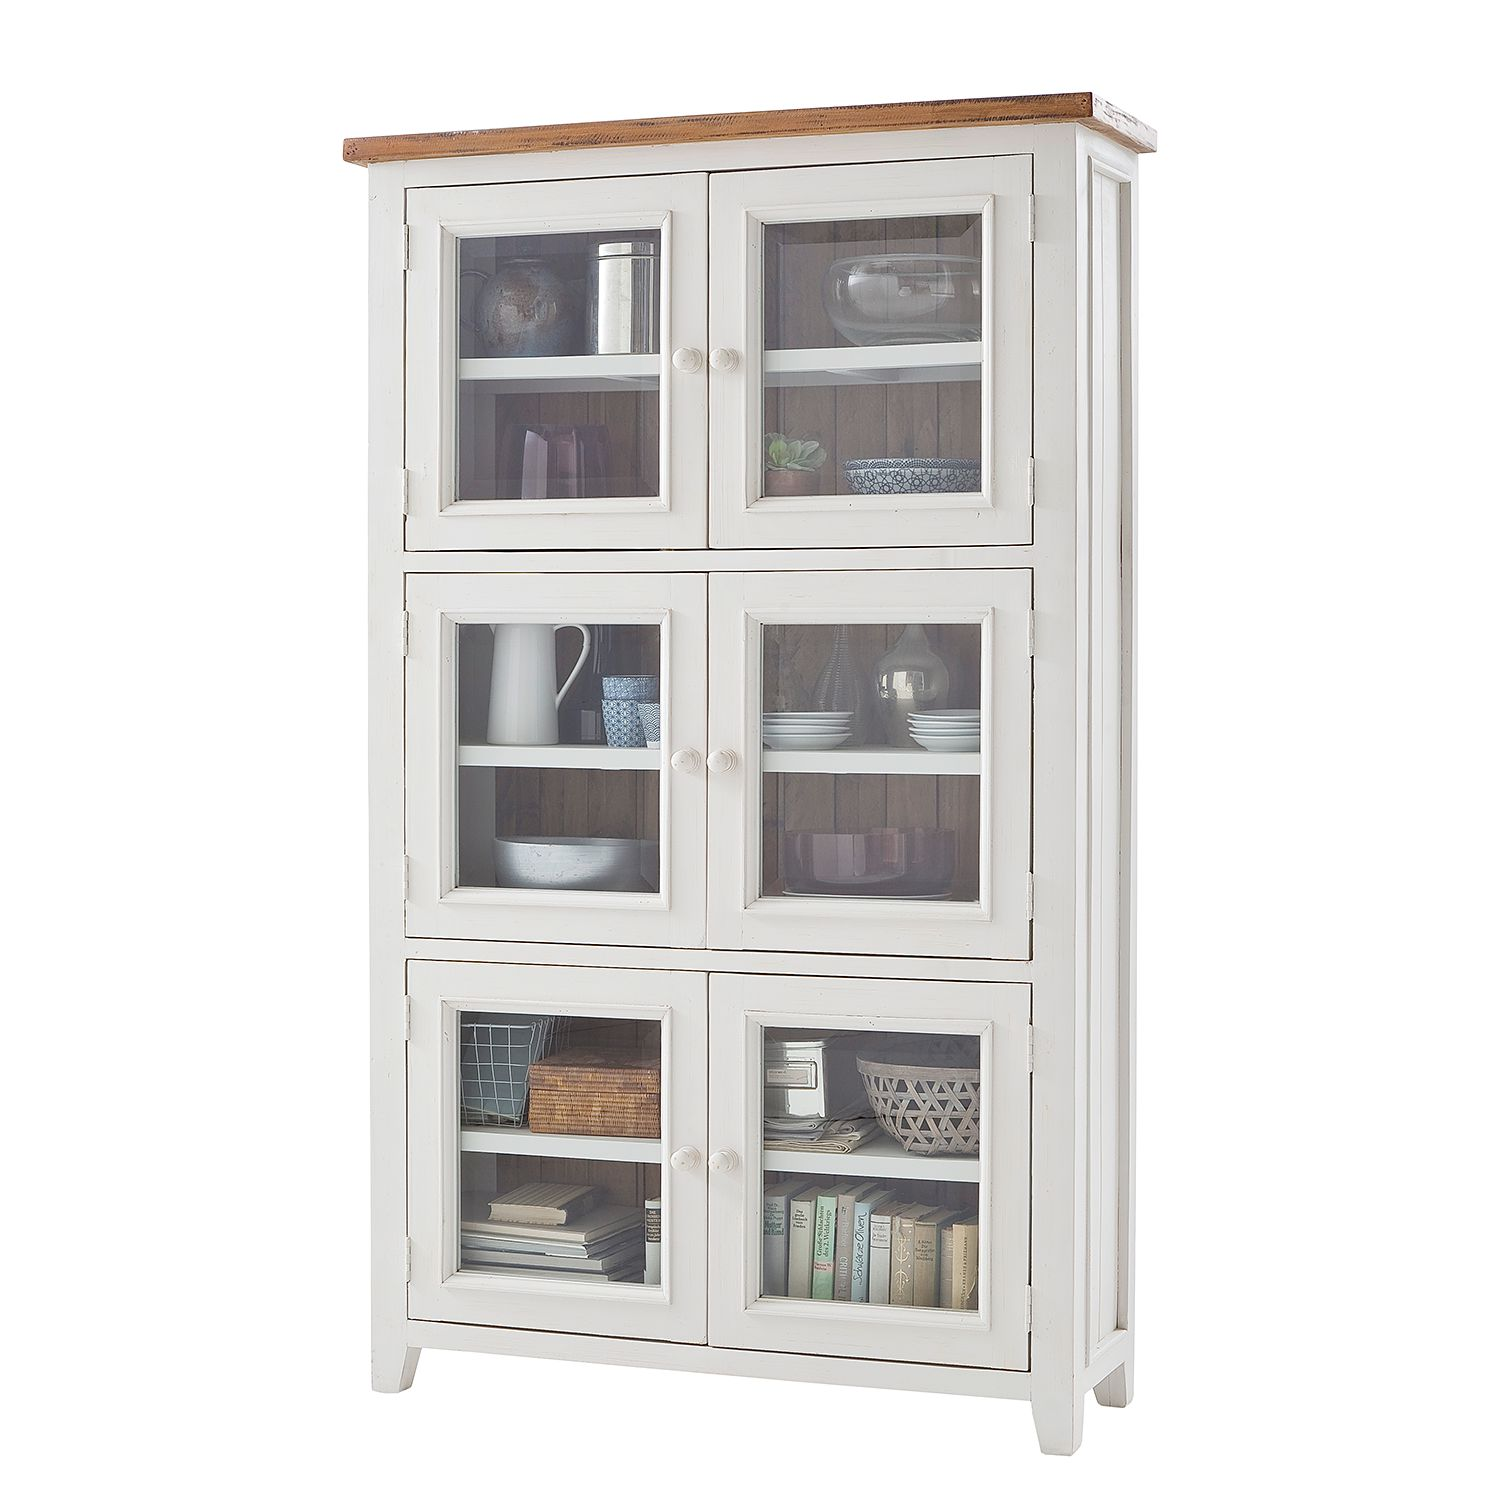 armoire vitrine balignton pin massif blanc maison belfort par maison belfort chez home24 fr. Black Bedroom Furniture Sets. Home Design Ideas